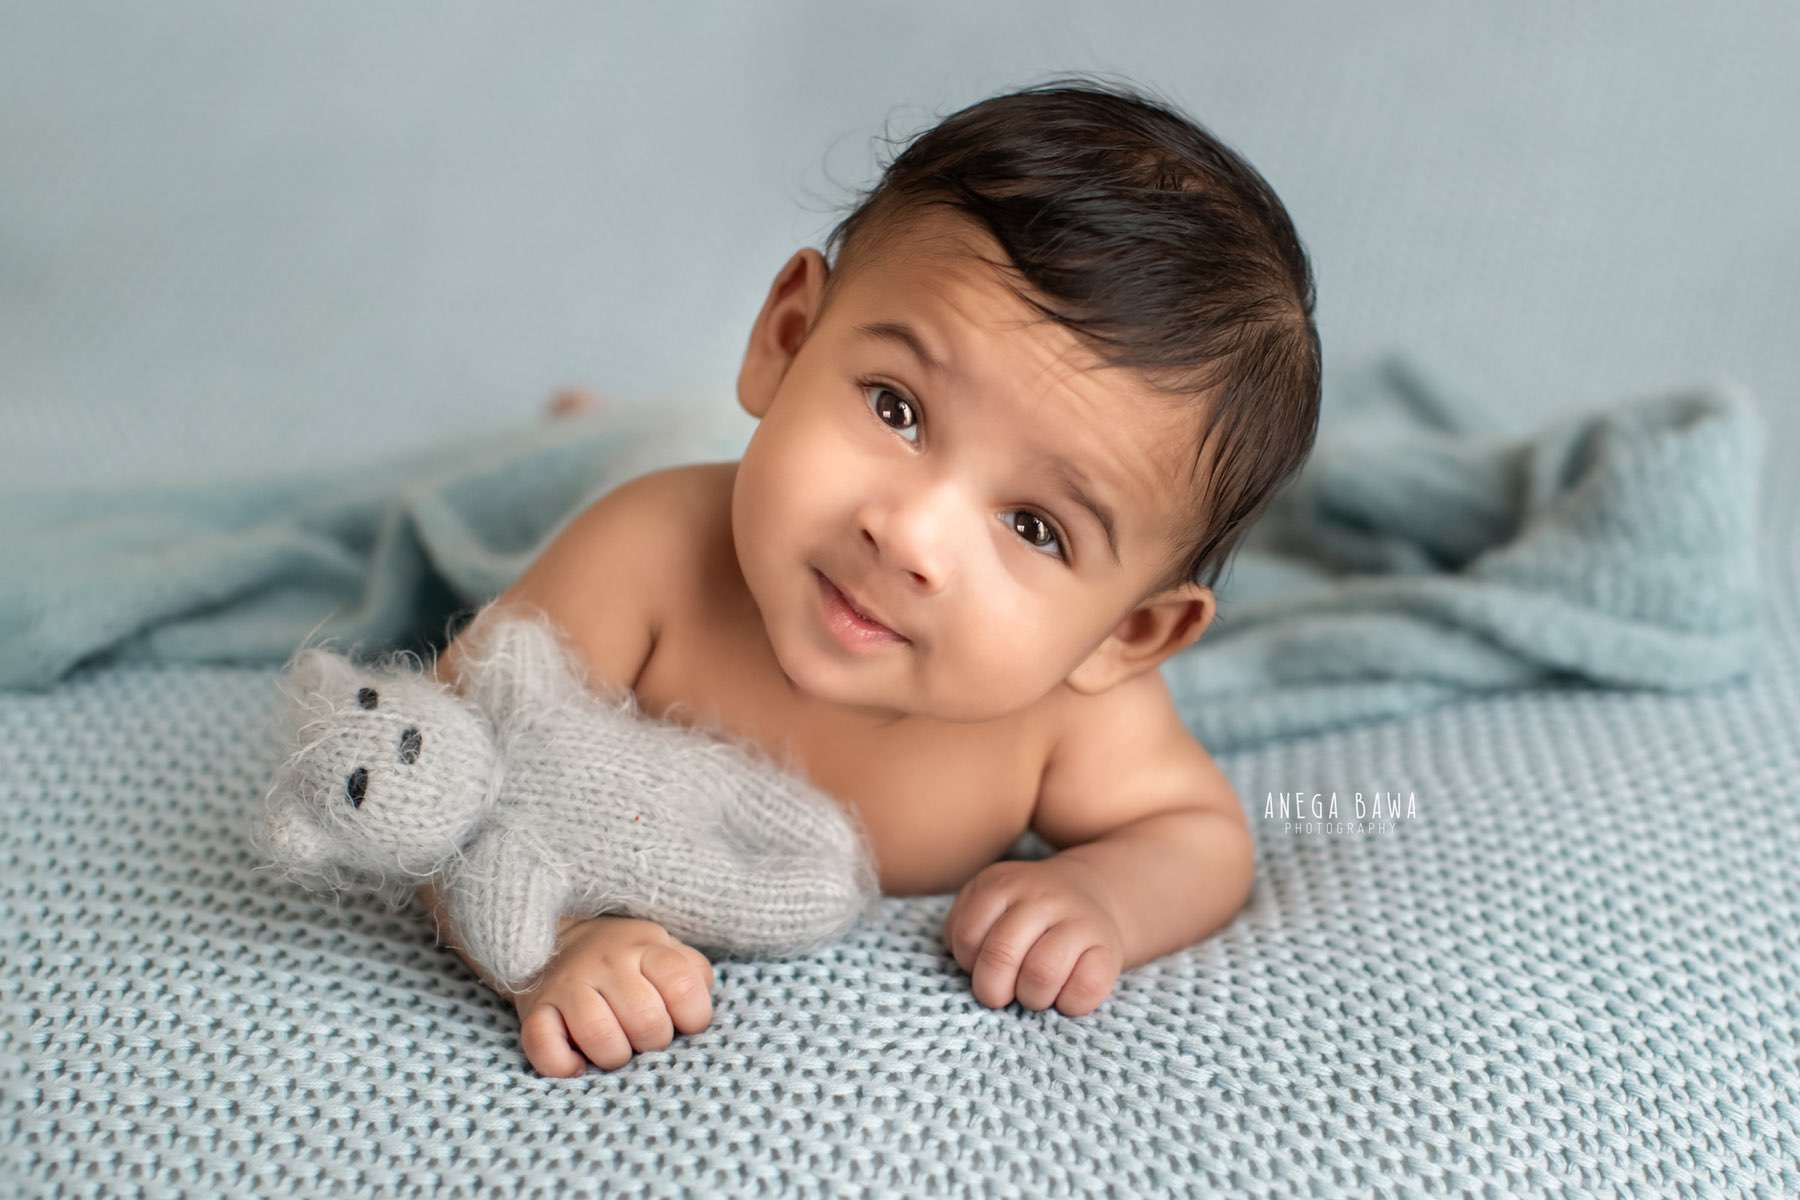 249905-blue-background-baby-photography-delhi-4-5-6-7-months-baby-photoshoot-gurgaon-anega-bawa